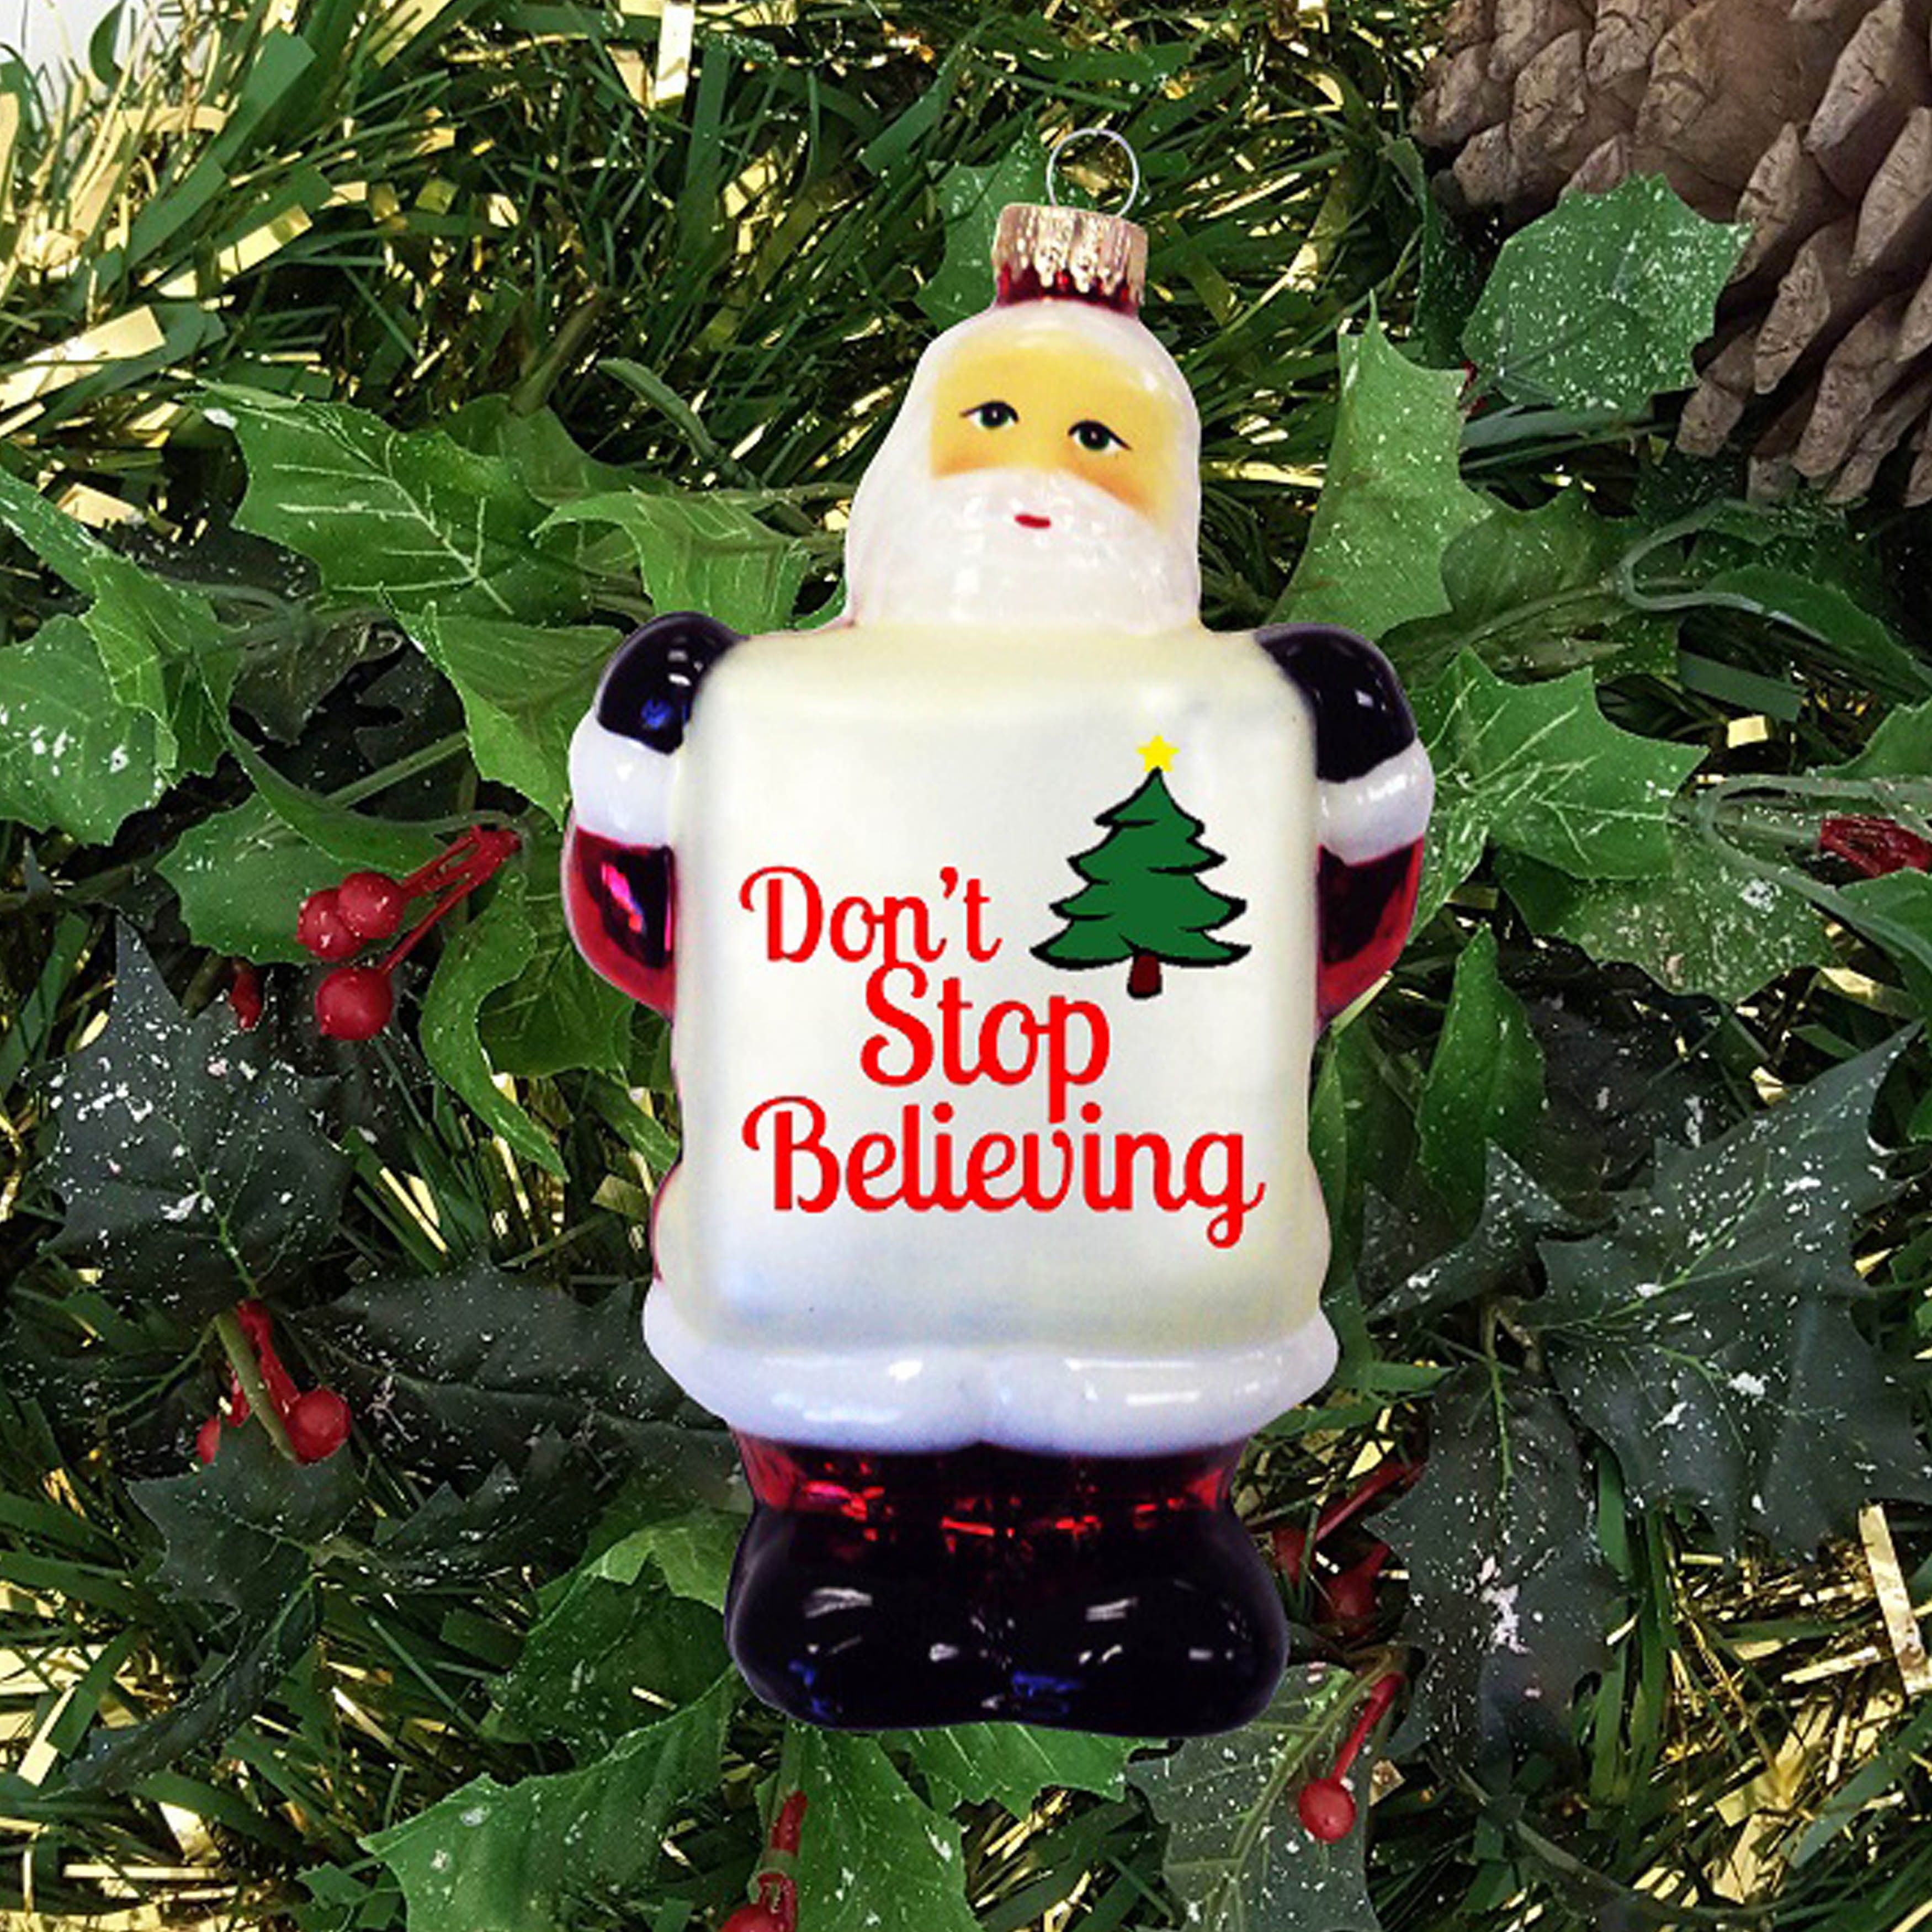 5 Inch Santa Claus Ornament With Dont Stop Believing Sign Merry Christmas SignsChristmas StoreGlass